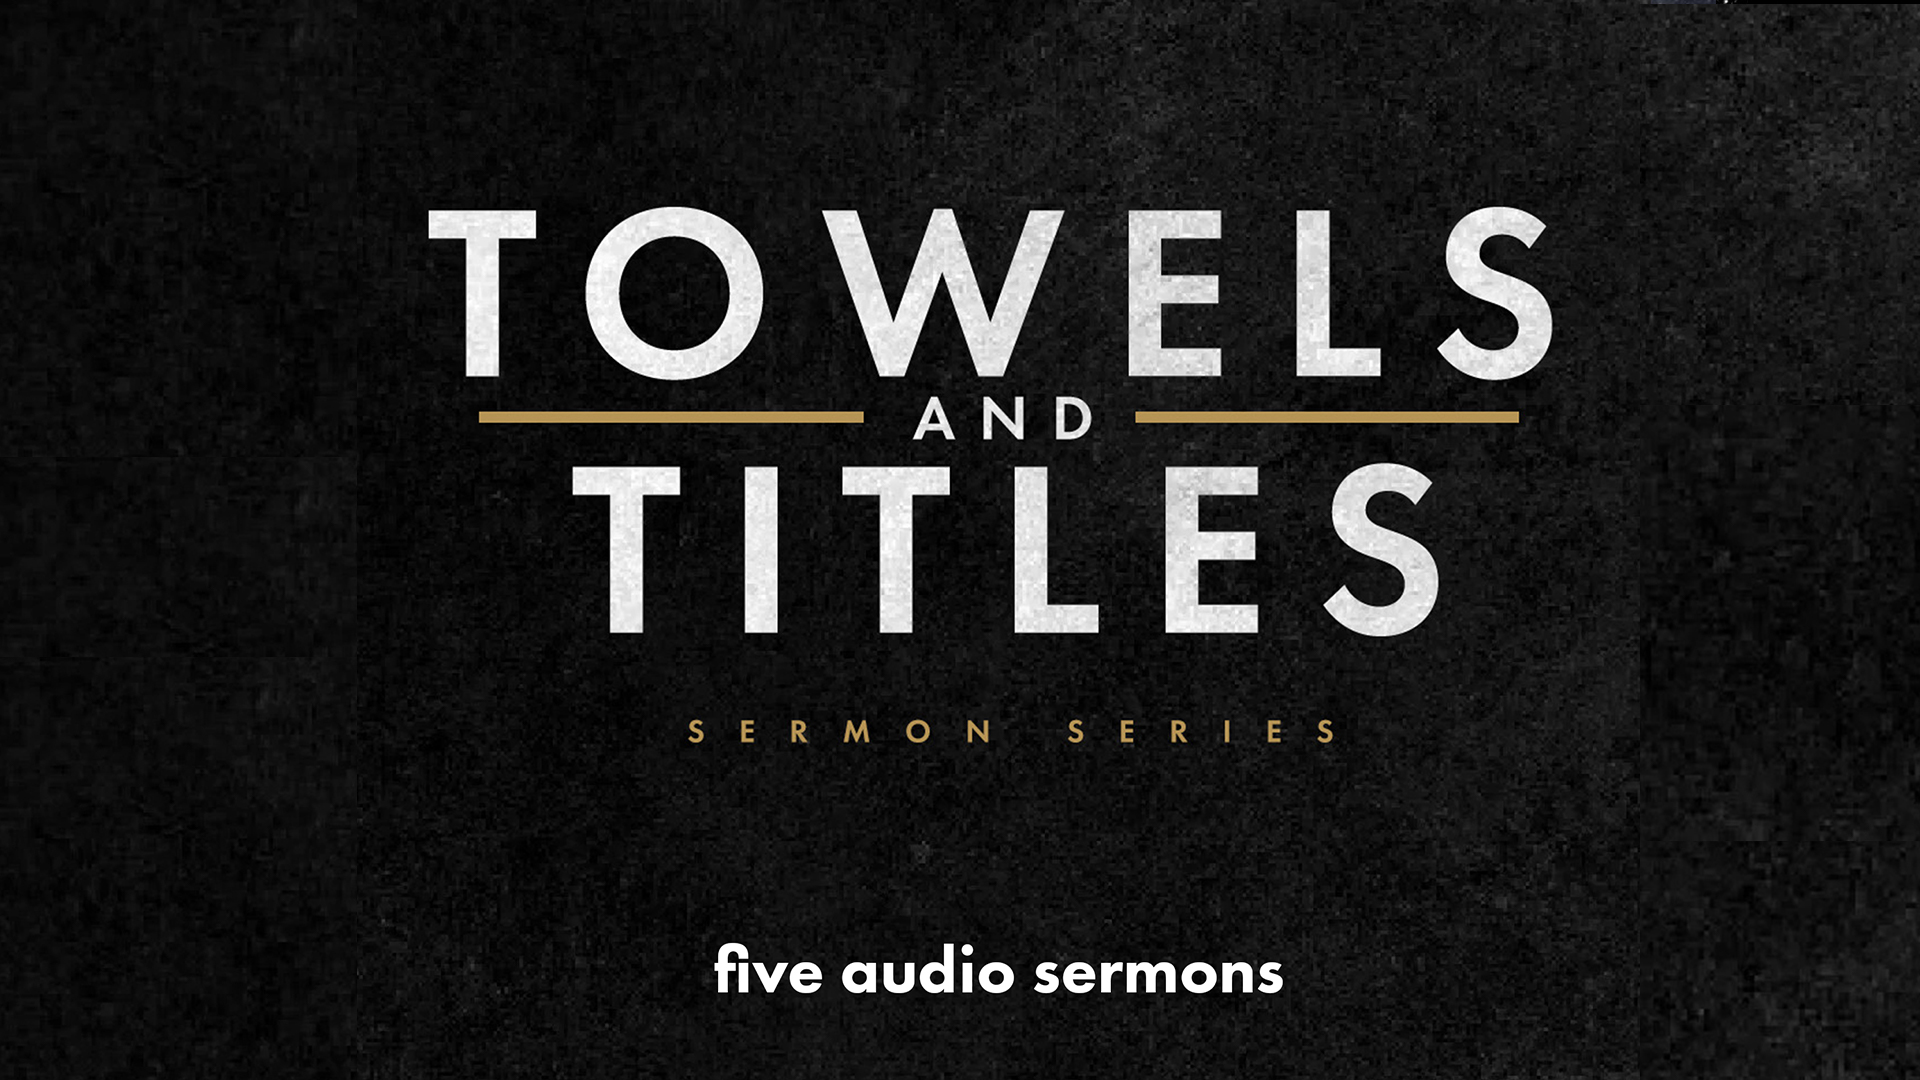 https://vladimirsavchuk.com/resources/towels-and-titles-audio-series/